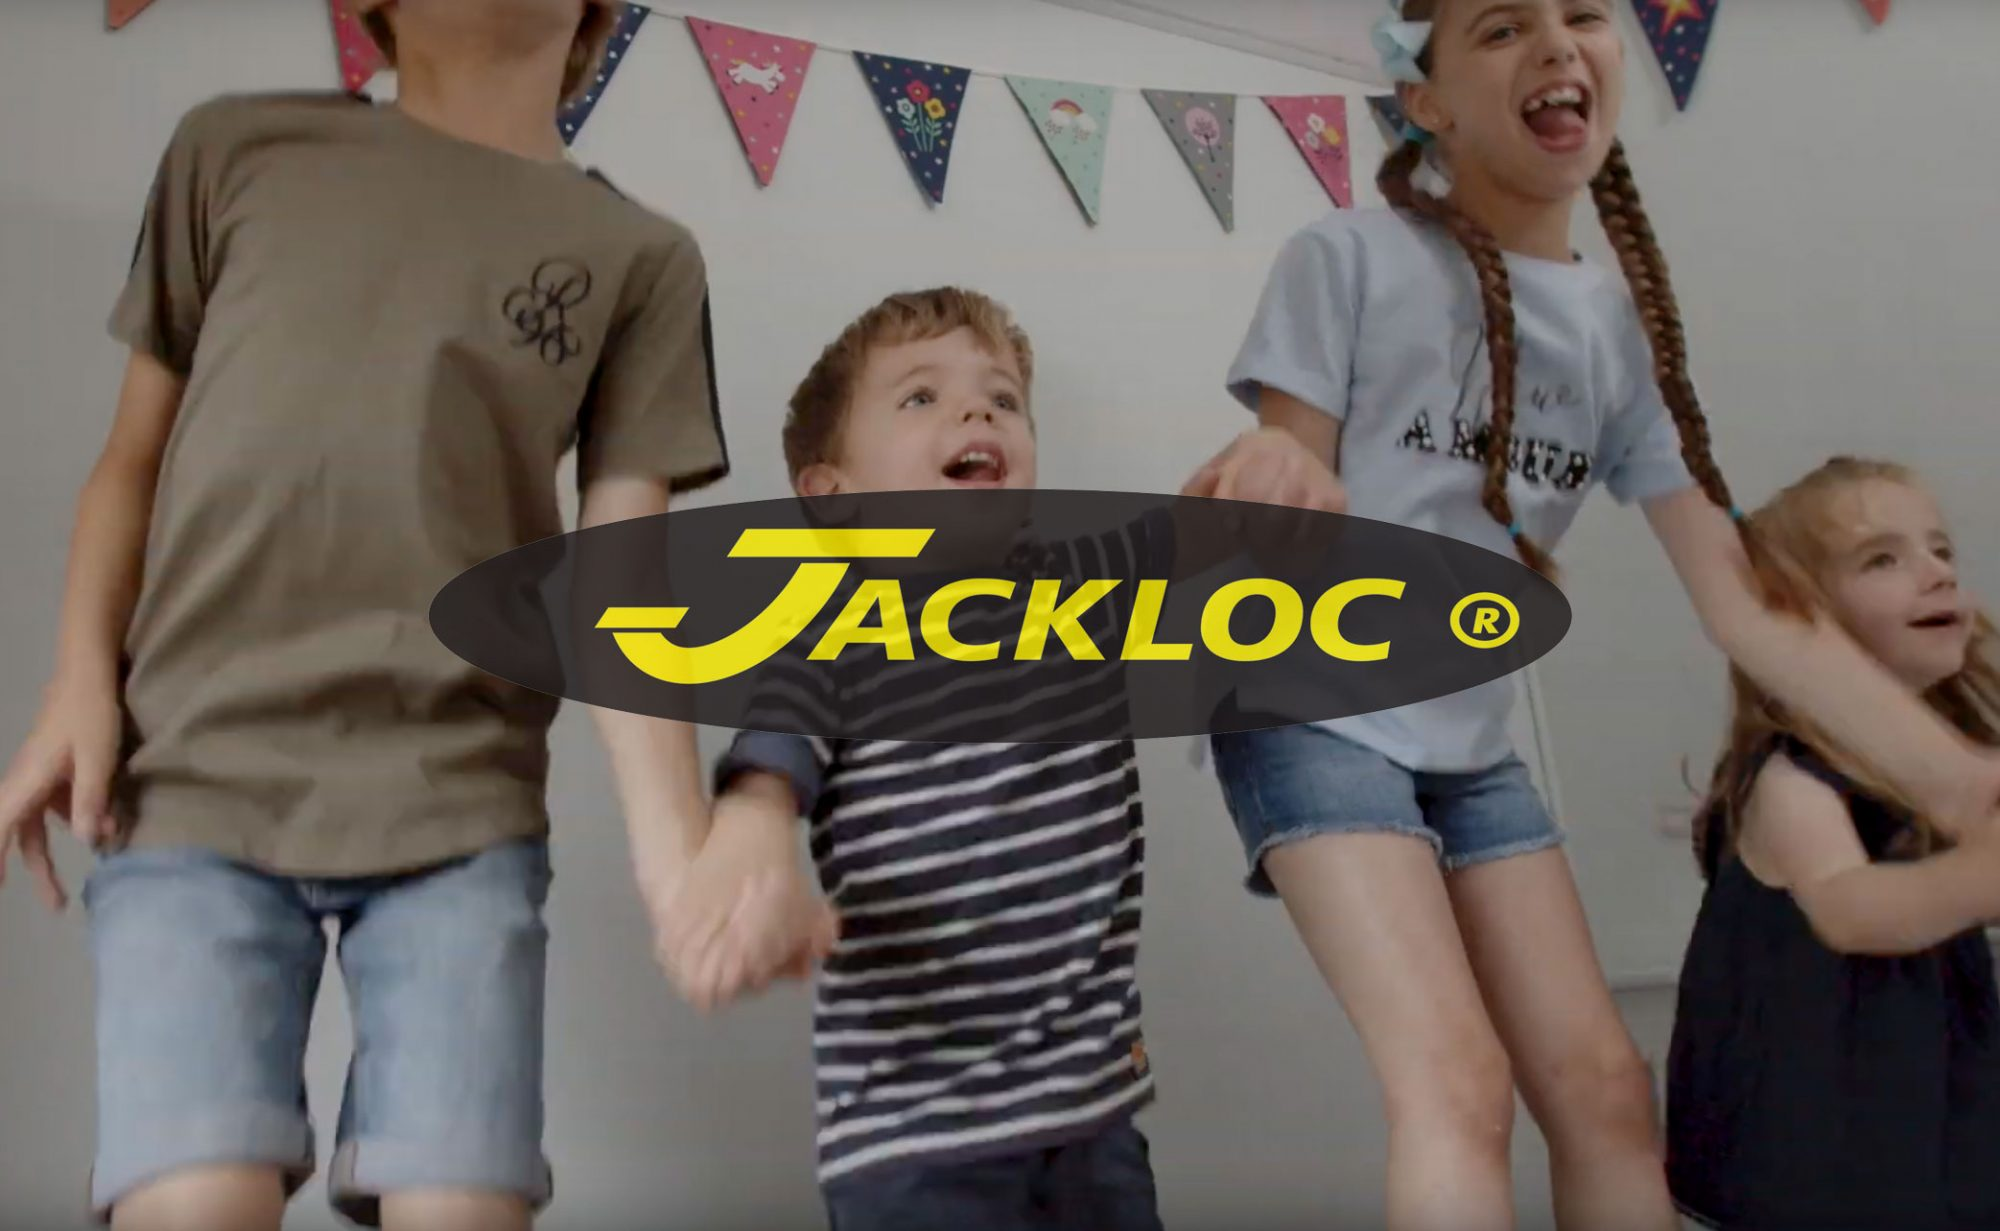 Jackloc children video